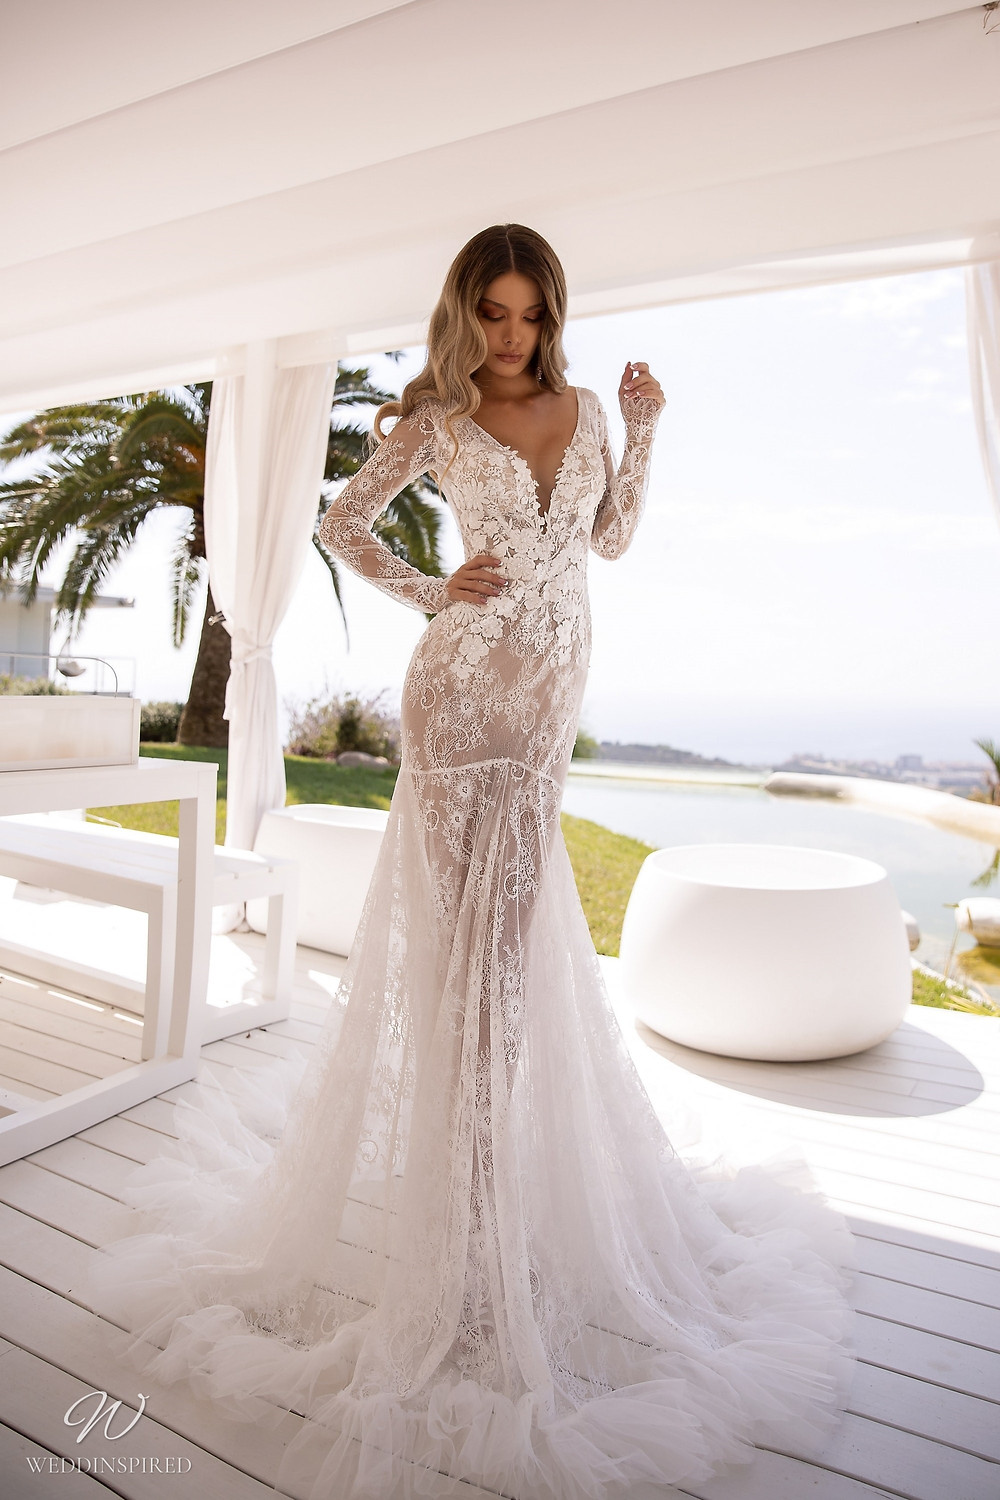 A Tina Valerdi lace fit and flare wedding dress with long sleeves and a low neckline